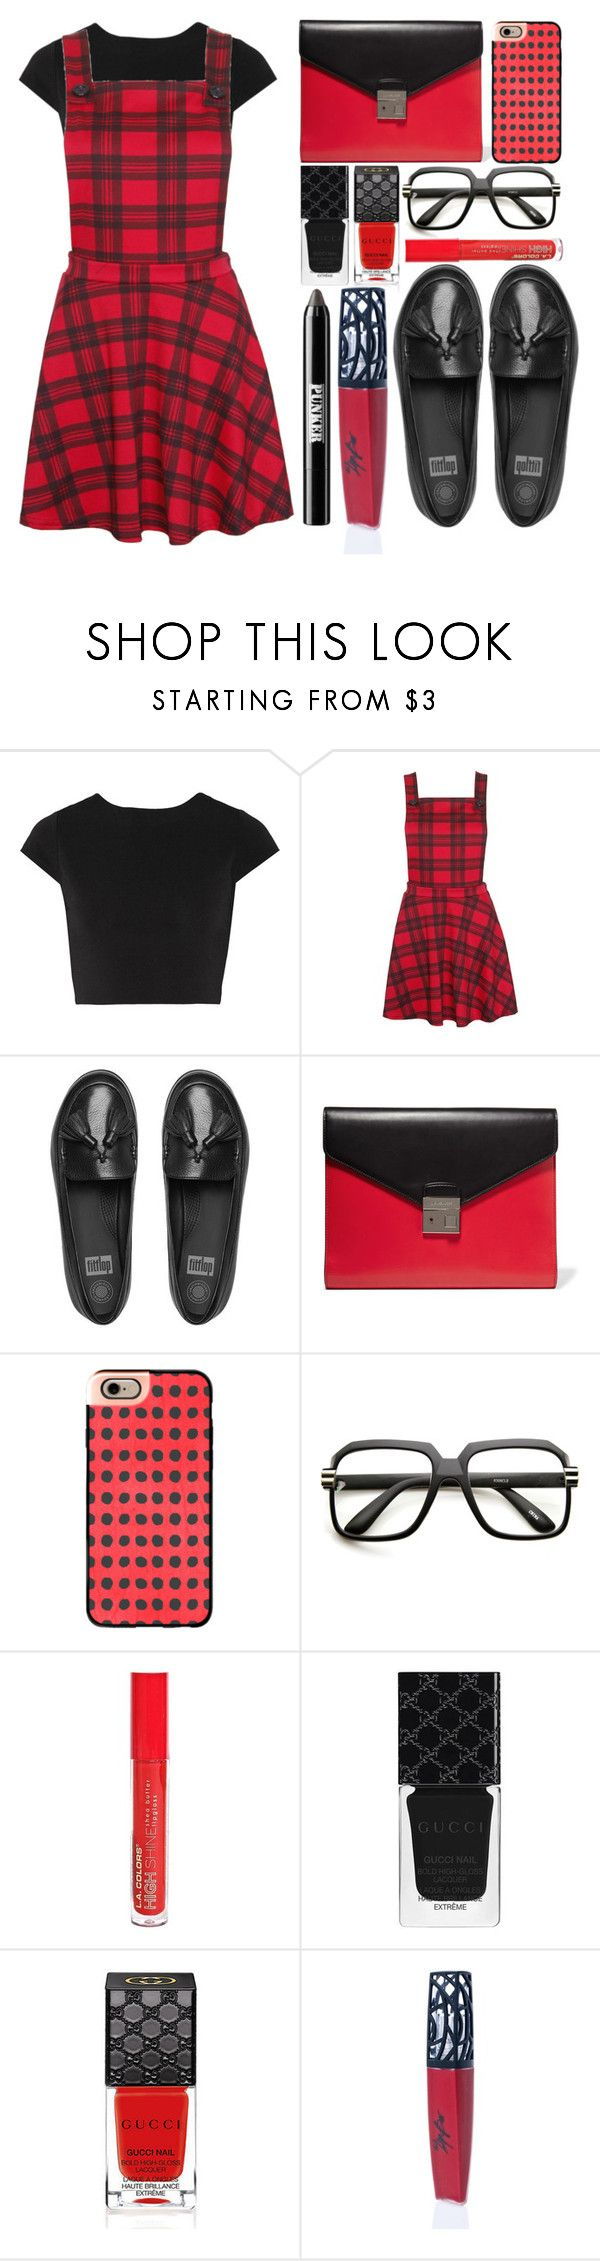 """Schoolgirl Style"" by juliehalloran ❤ liked on Polyvore featuring Alice + Olivia, FitFlop, Michael Kors, Casetify, ZeroUV, L.A. Colors, Gucci, The Lip Bar and Ardency Inn"